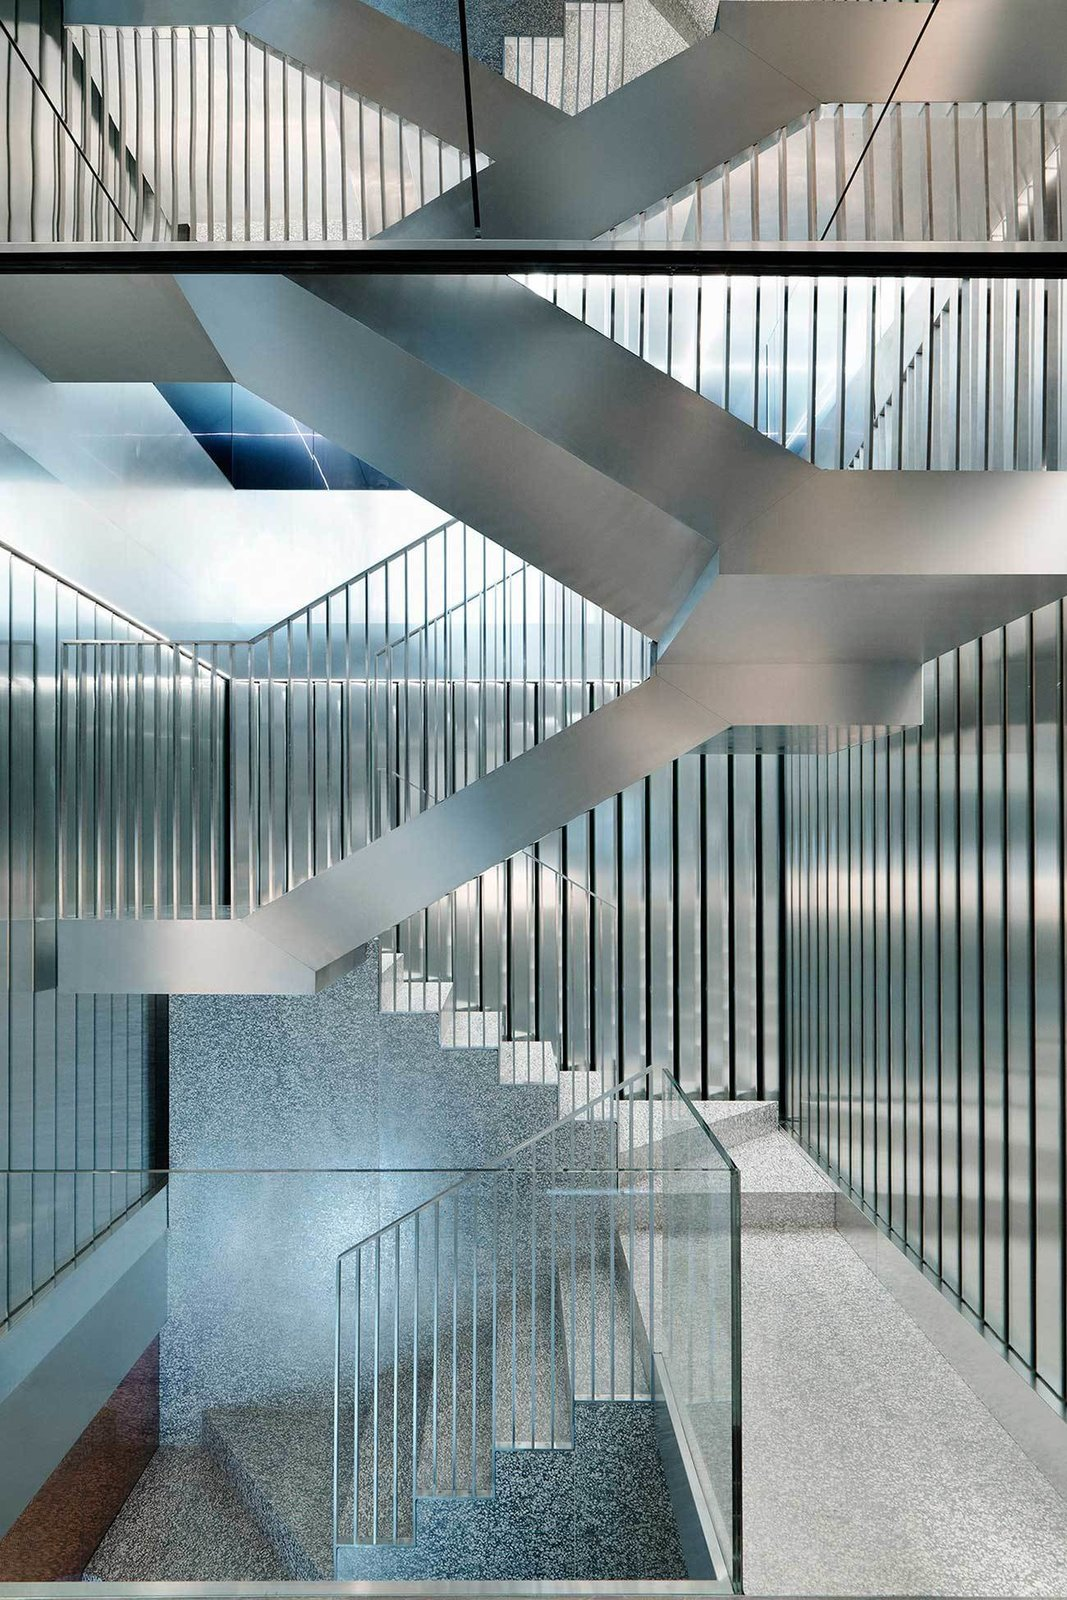 Repossi Jewelry Flagship Store by Rem Koolhas  Photo 8 of 10 in How to Bring Light Into Dark Spaces